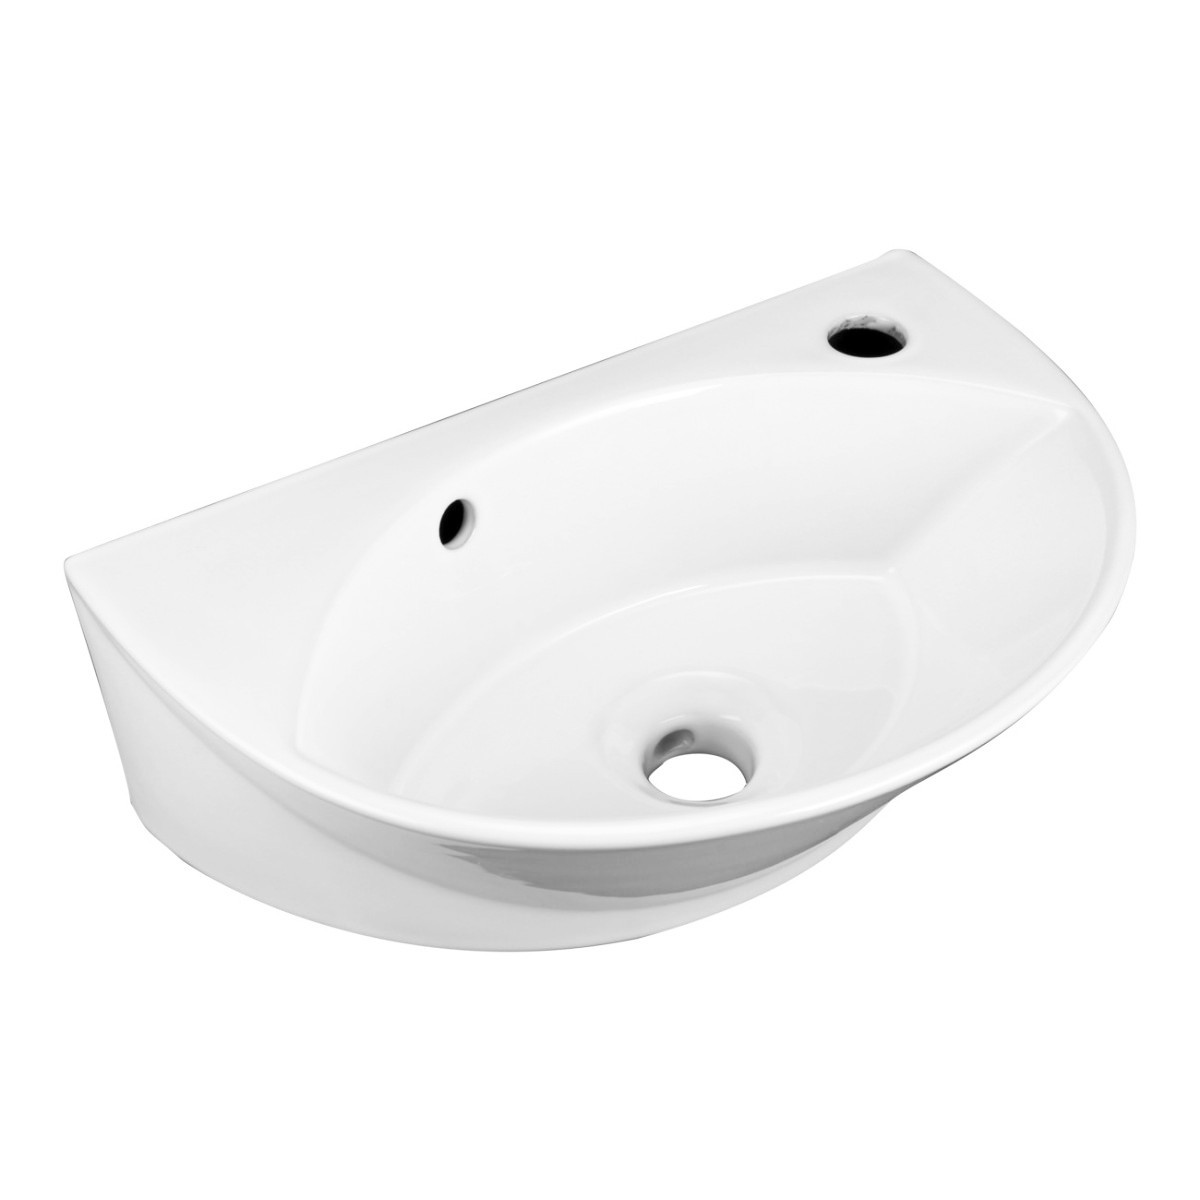 Small White Wall Mount Bathroom Vessel Sink With Single